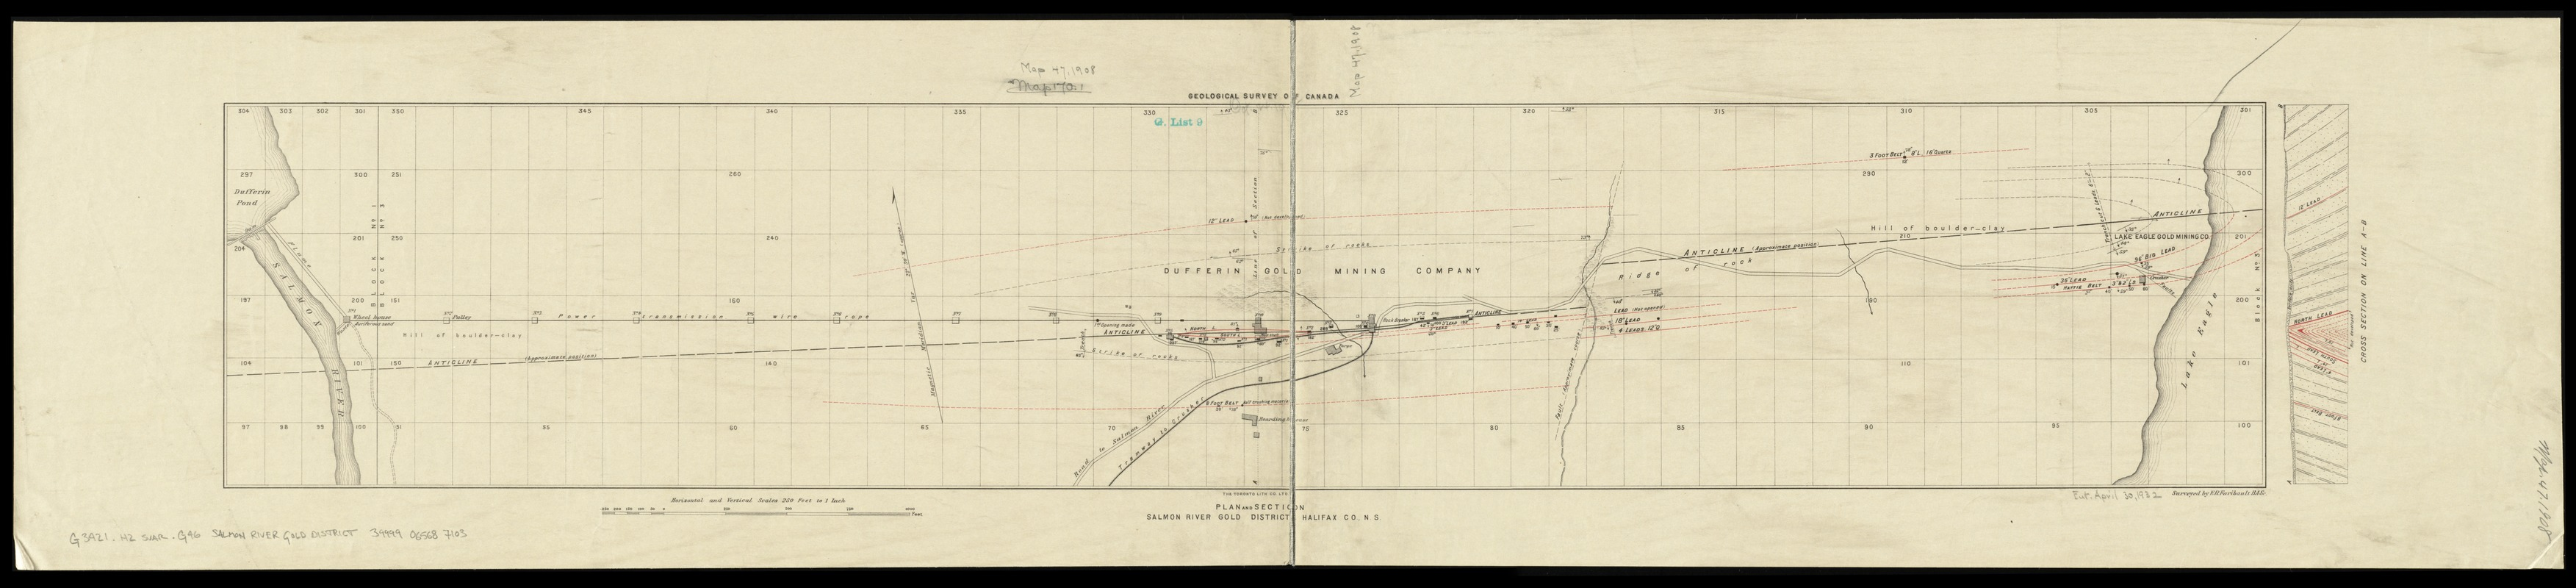 Plan and section, Salmon River gold district, Halifax Co., N.S